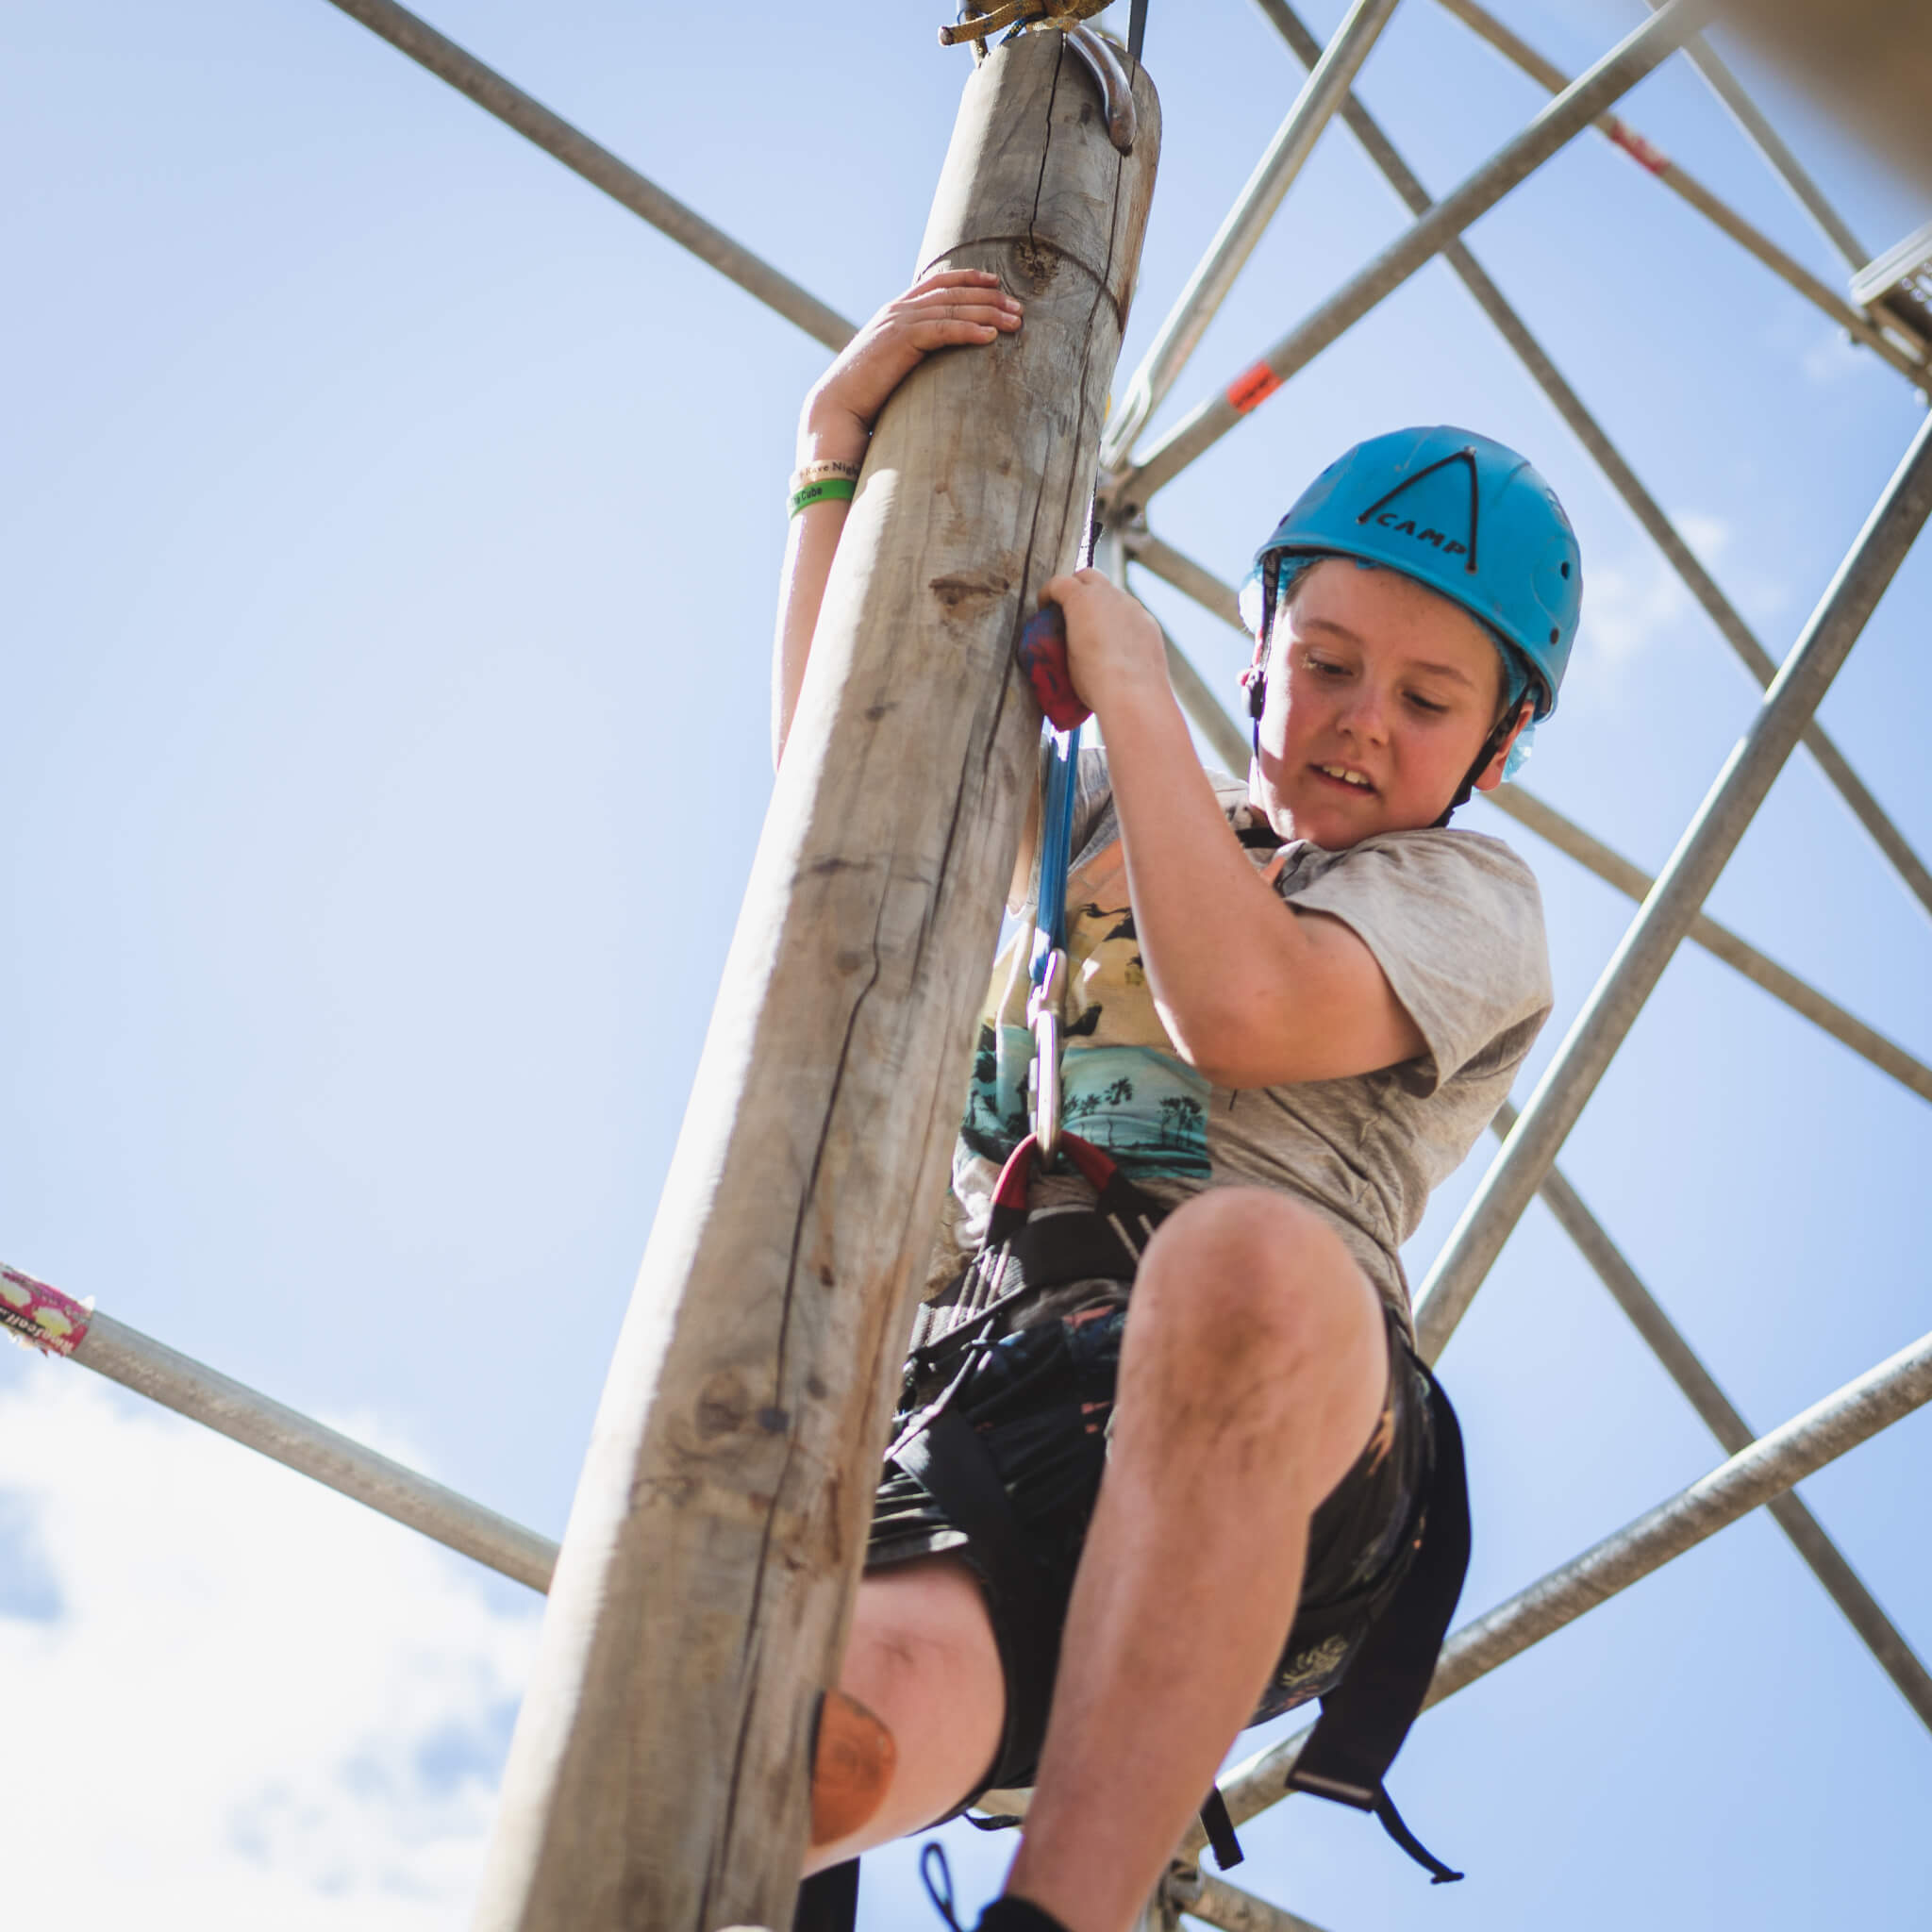 New Youth Program Case Study Get It Wrong Scout Climbing Obstacle